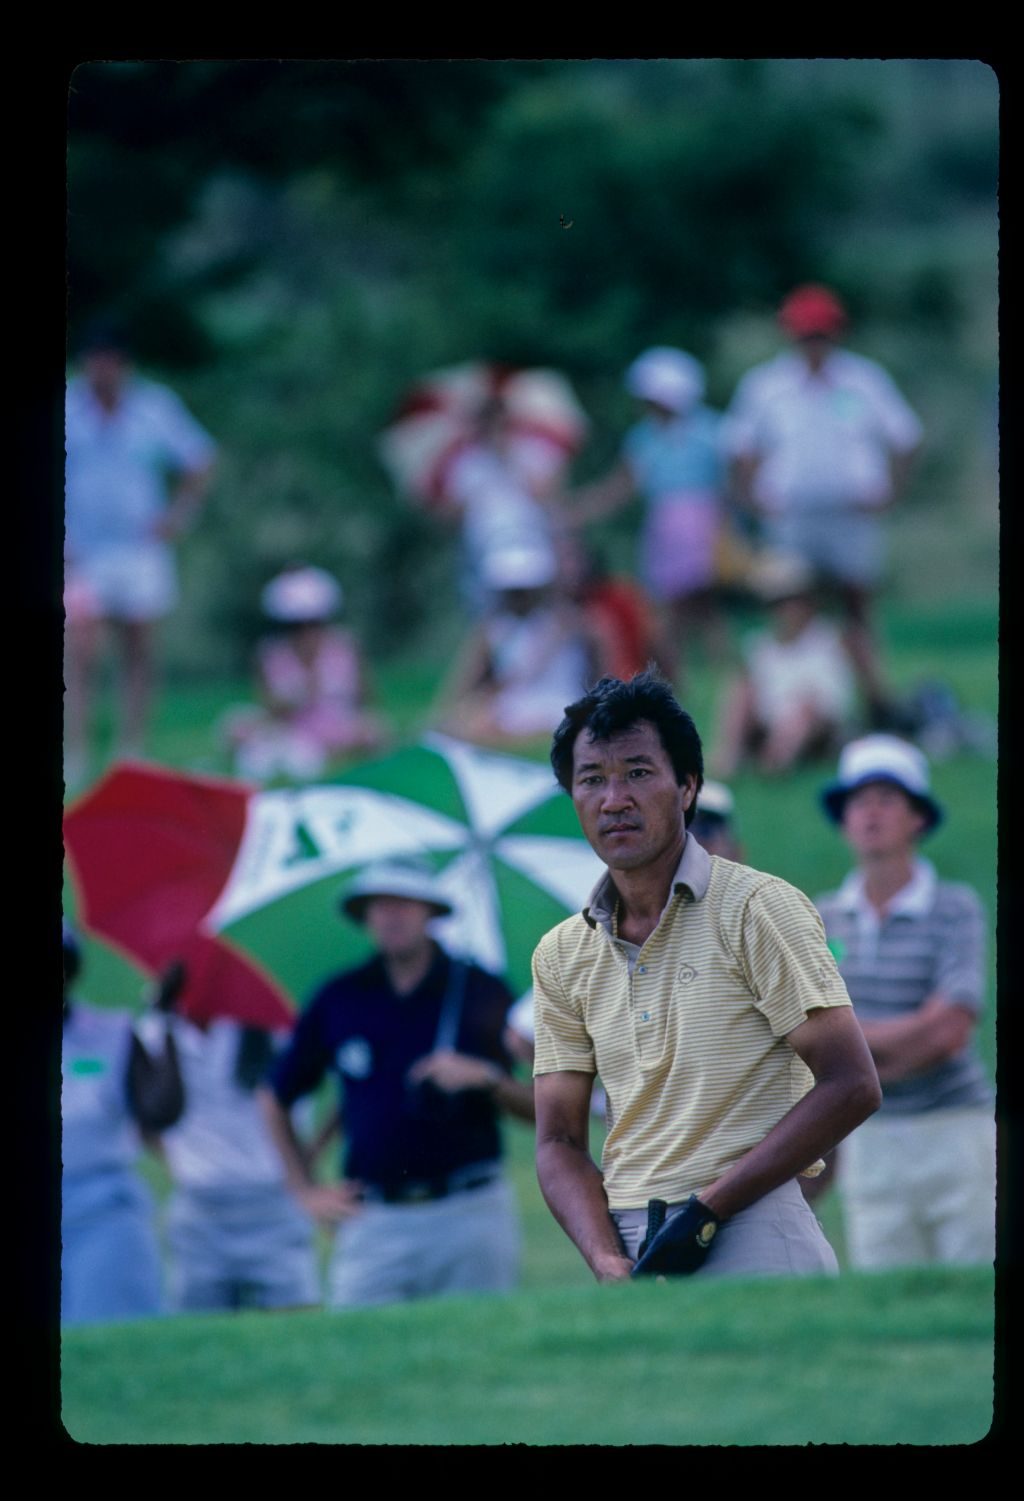 Isao Aoki staring after his chip during the 1984 Sun City Challenge